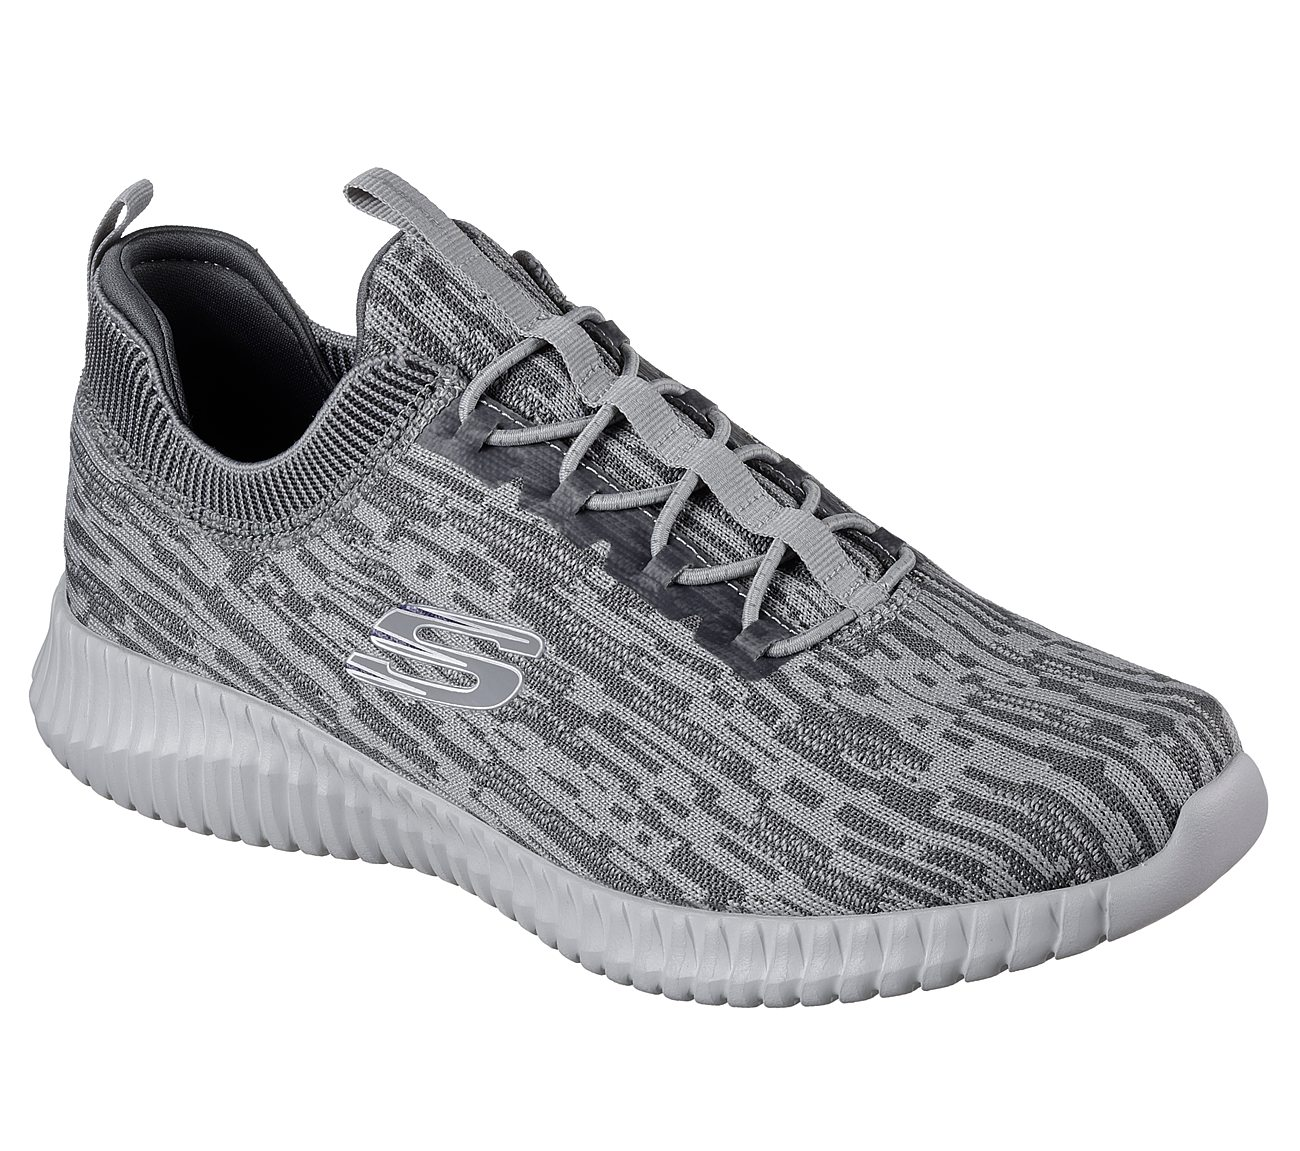 Skechers Men's Elite Flex Wasi... pay with paypal online nicekicks sale online ILrBVLFIDf